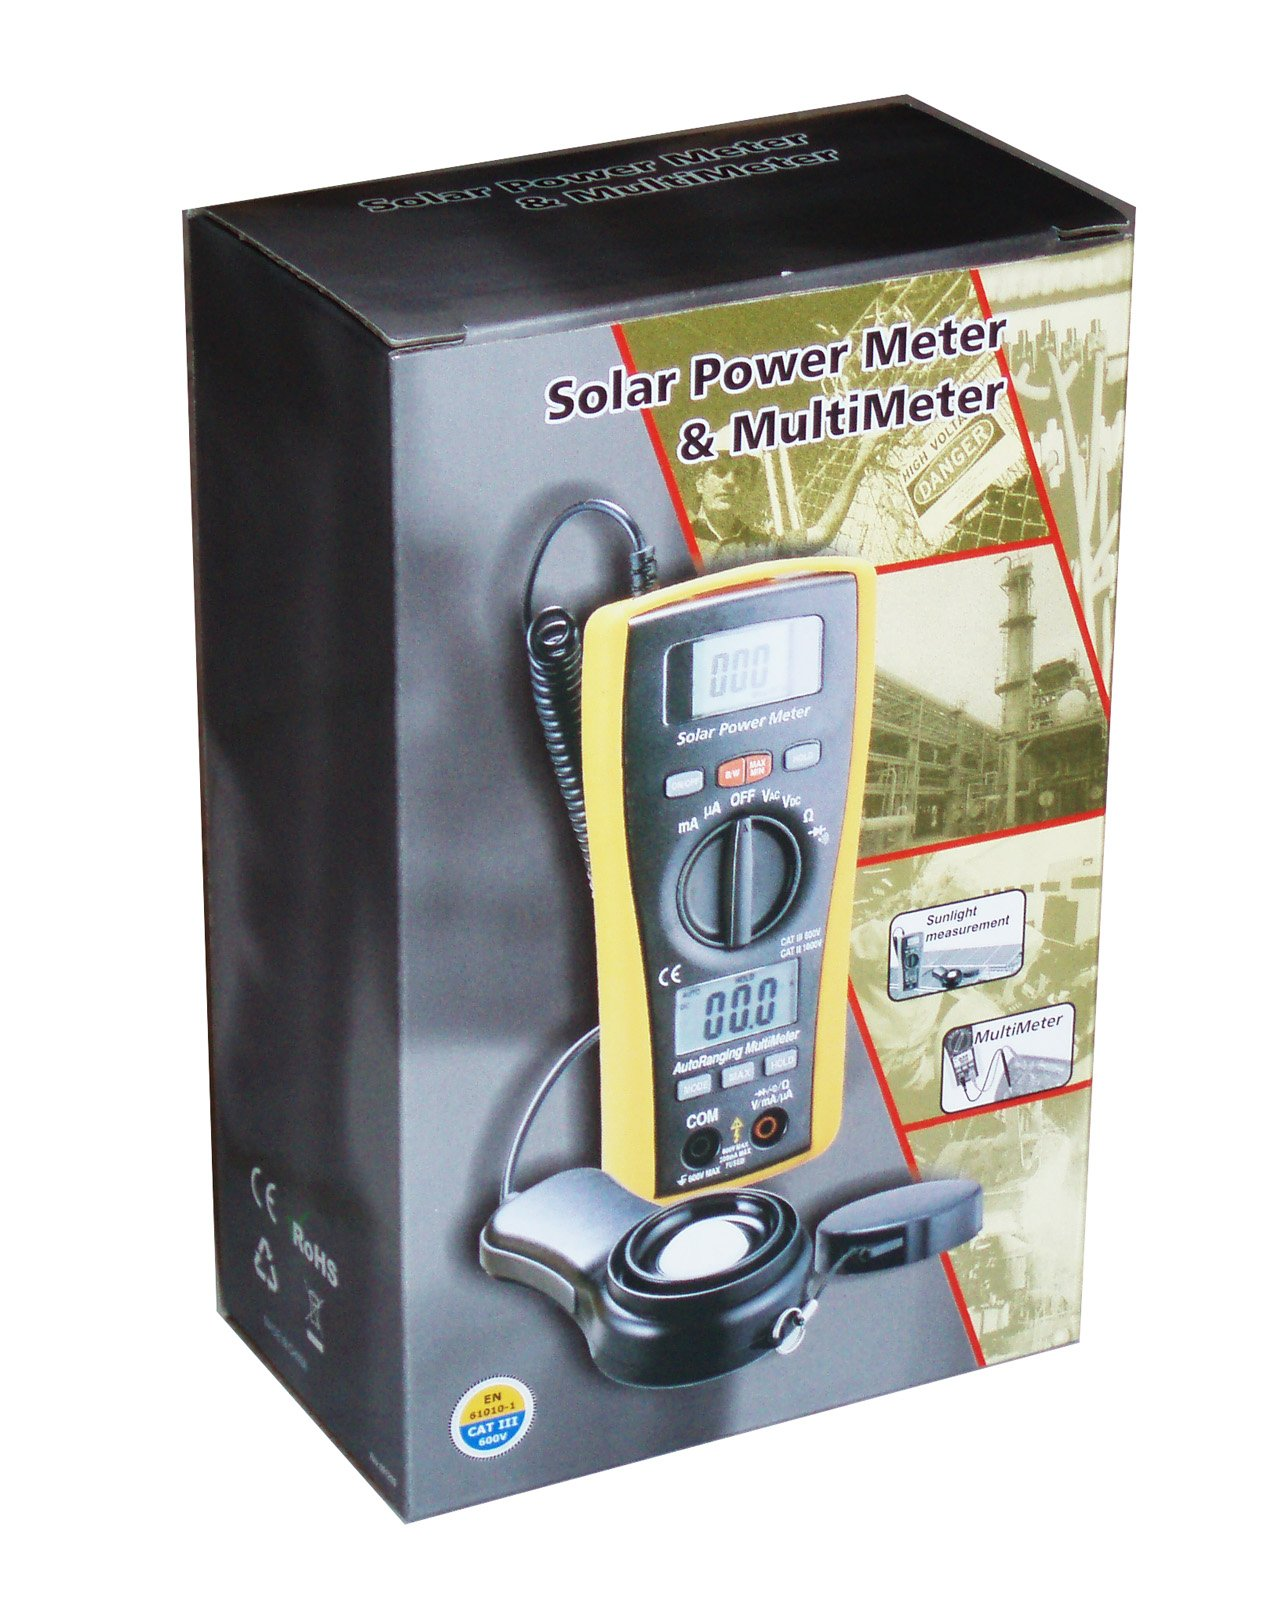 LA-1017 Sun Power Solar Energy Sunlight Meter with DMM Digital Multimeter by Ruby Electronics (Image #1)